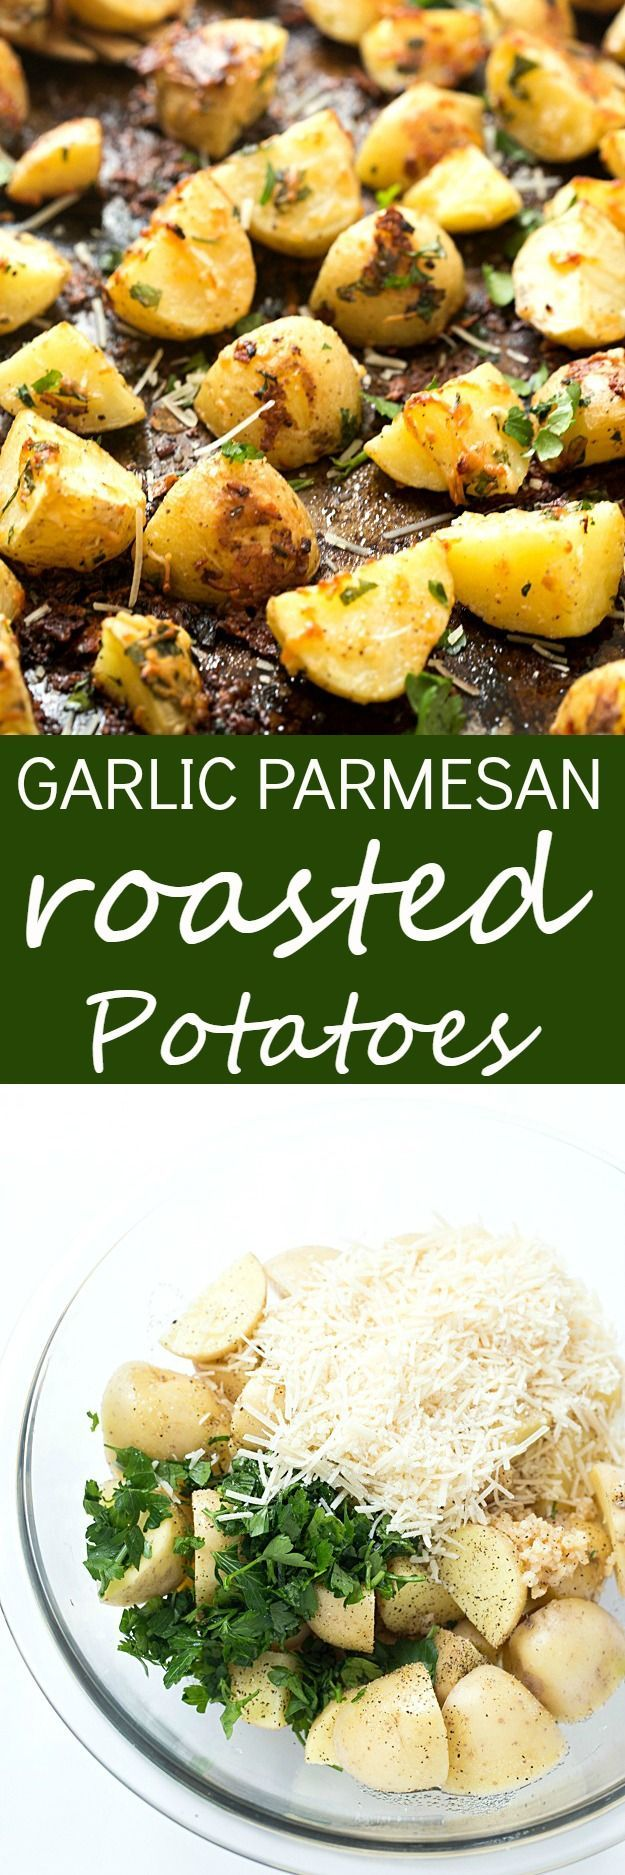 Garlic Parmesan Pan Roasted Potatoes - If you love crispy baked potatoes, you need to try these pan roasted potatoes! Crispy on the outside and moist and tender on the inside! The perfect side-dish to any meal you are making for dinner tonight!